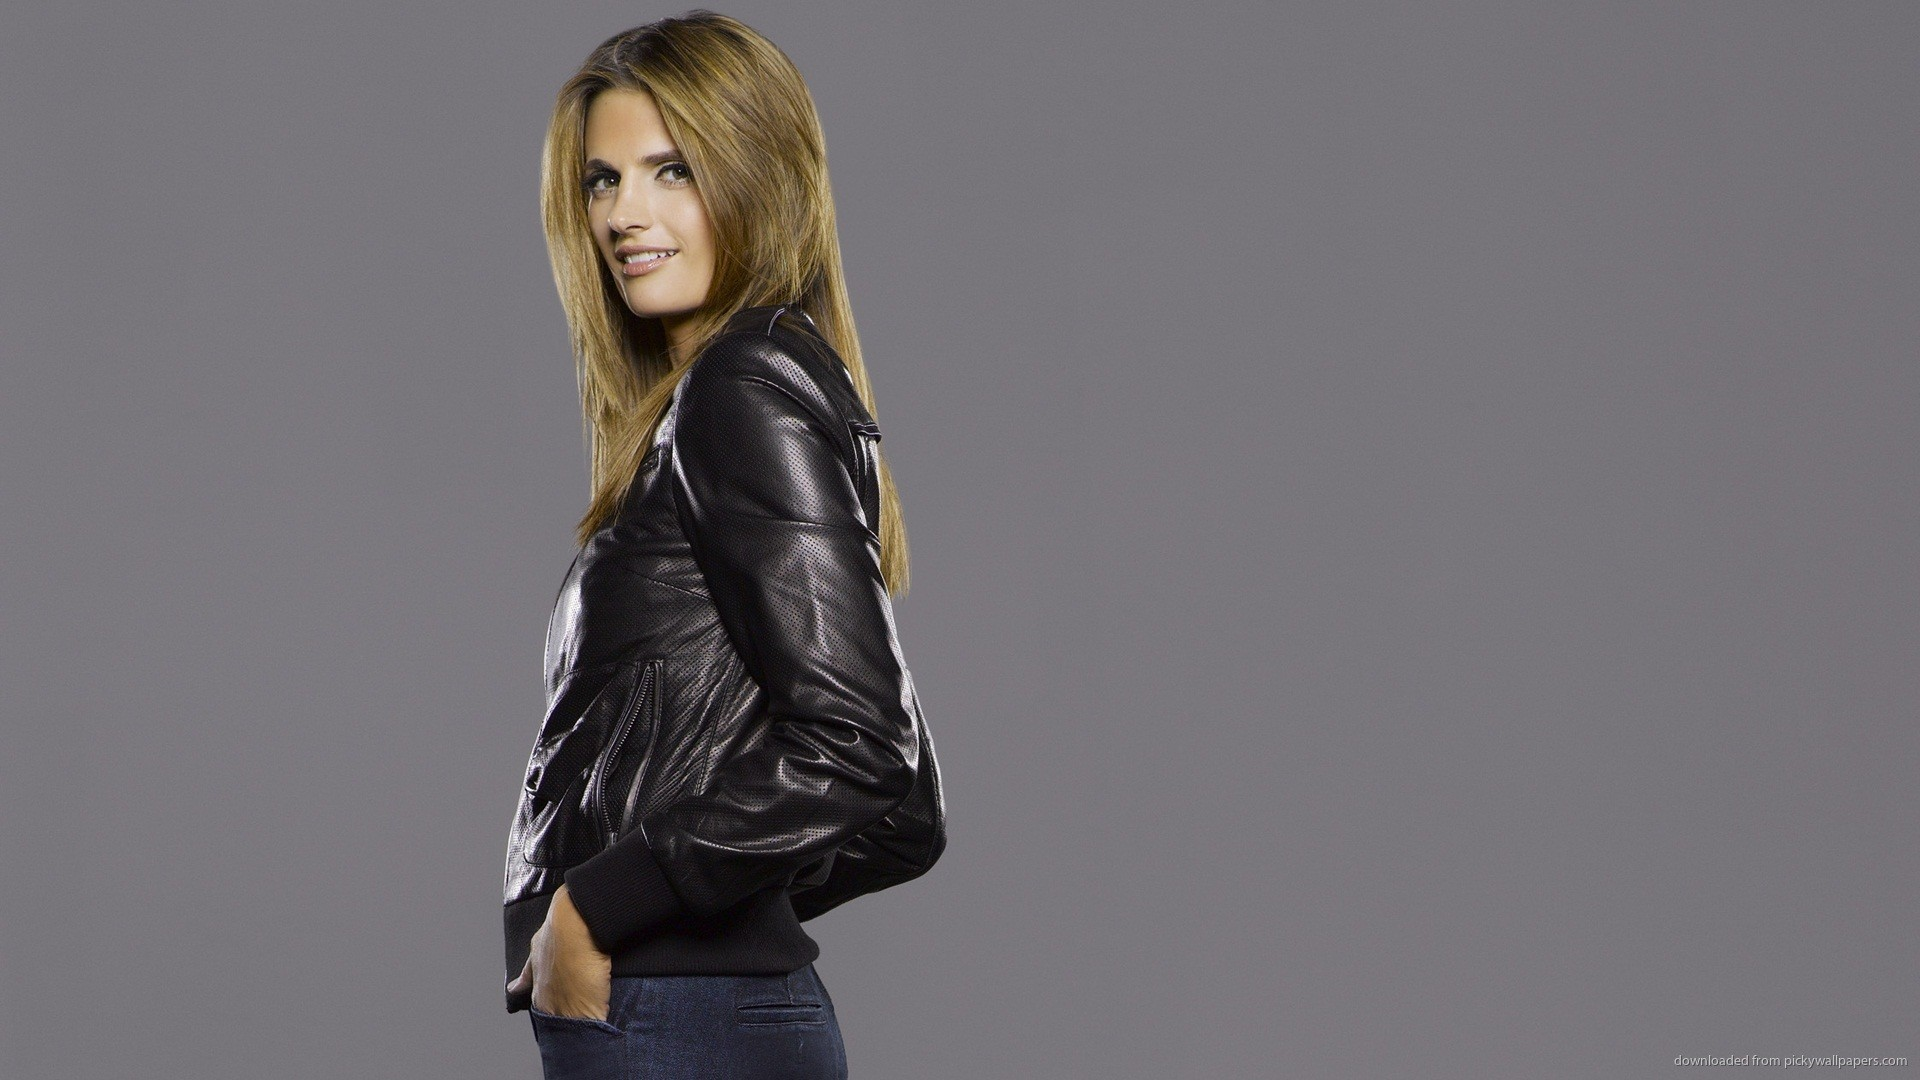 1920x1080 Stana Katic Leather Jacket Wallpaper picture